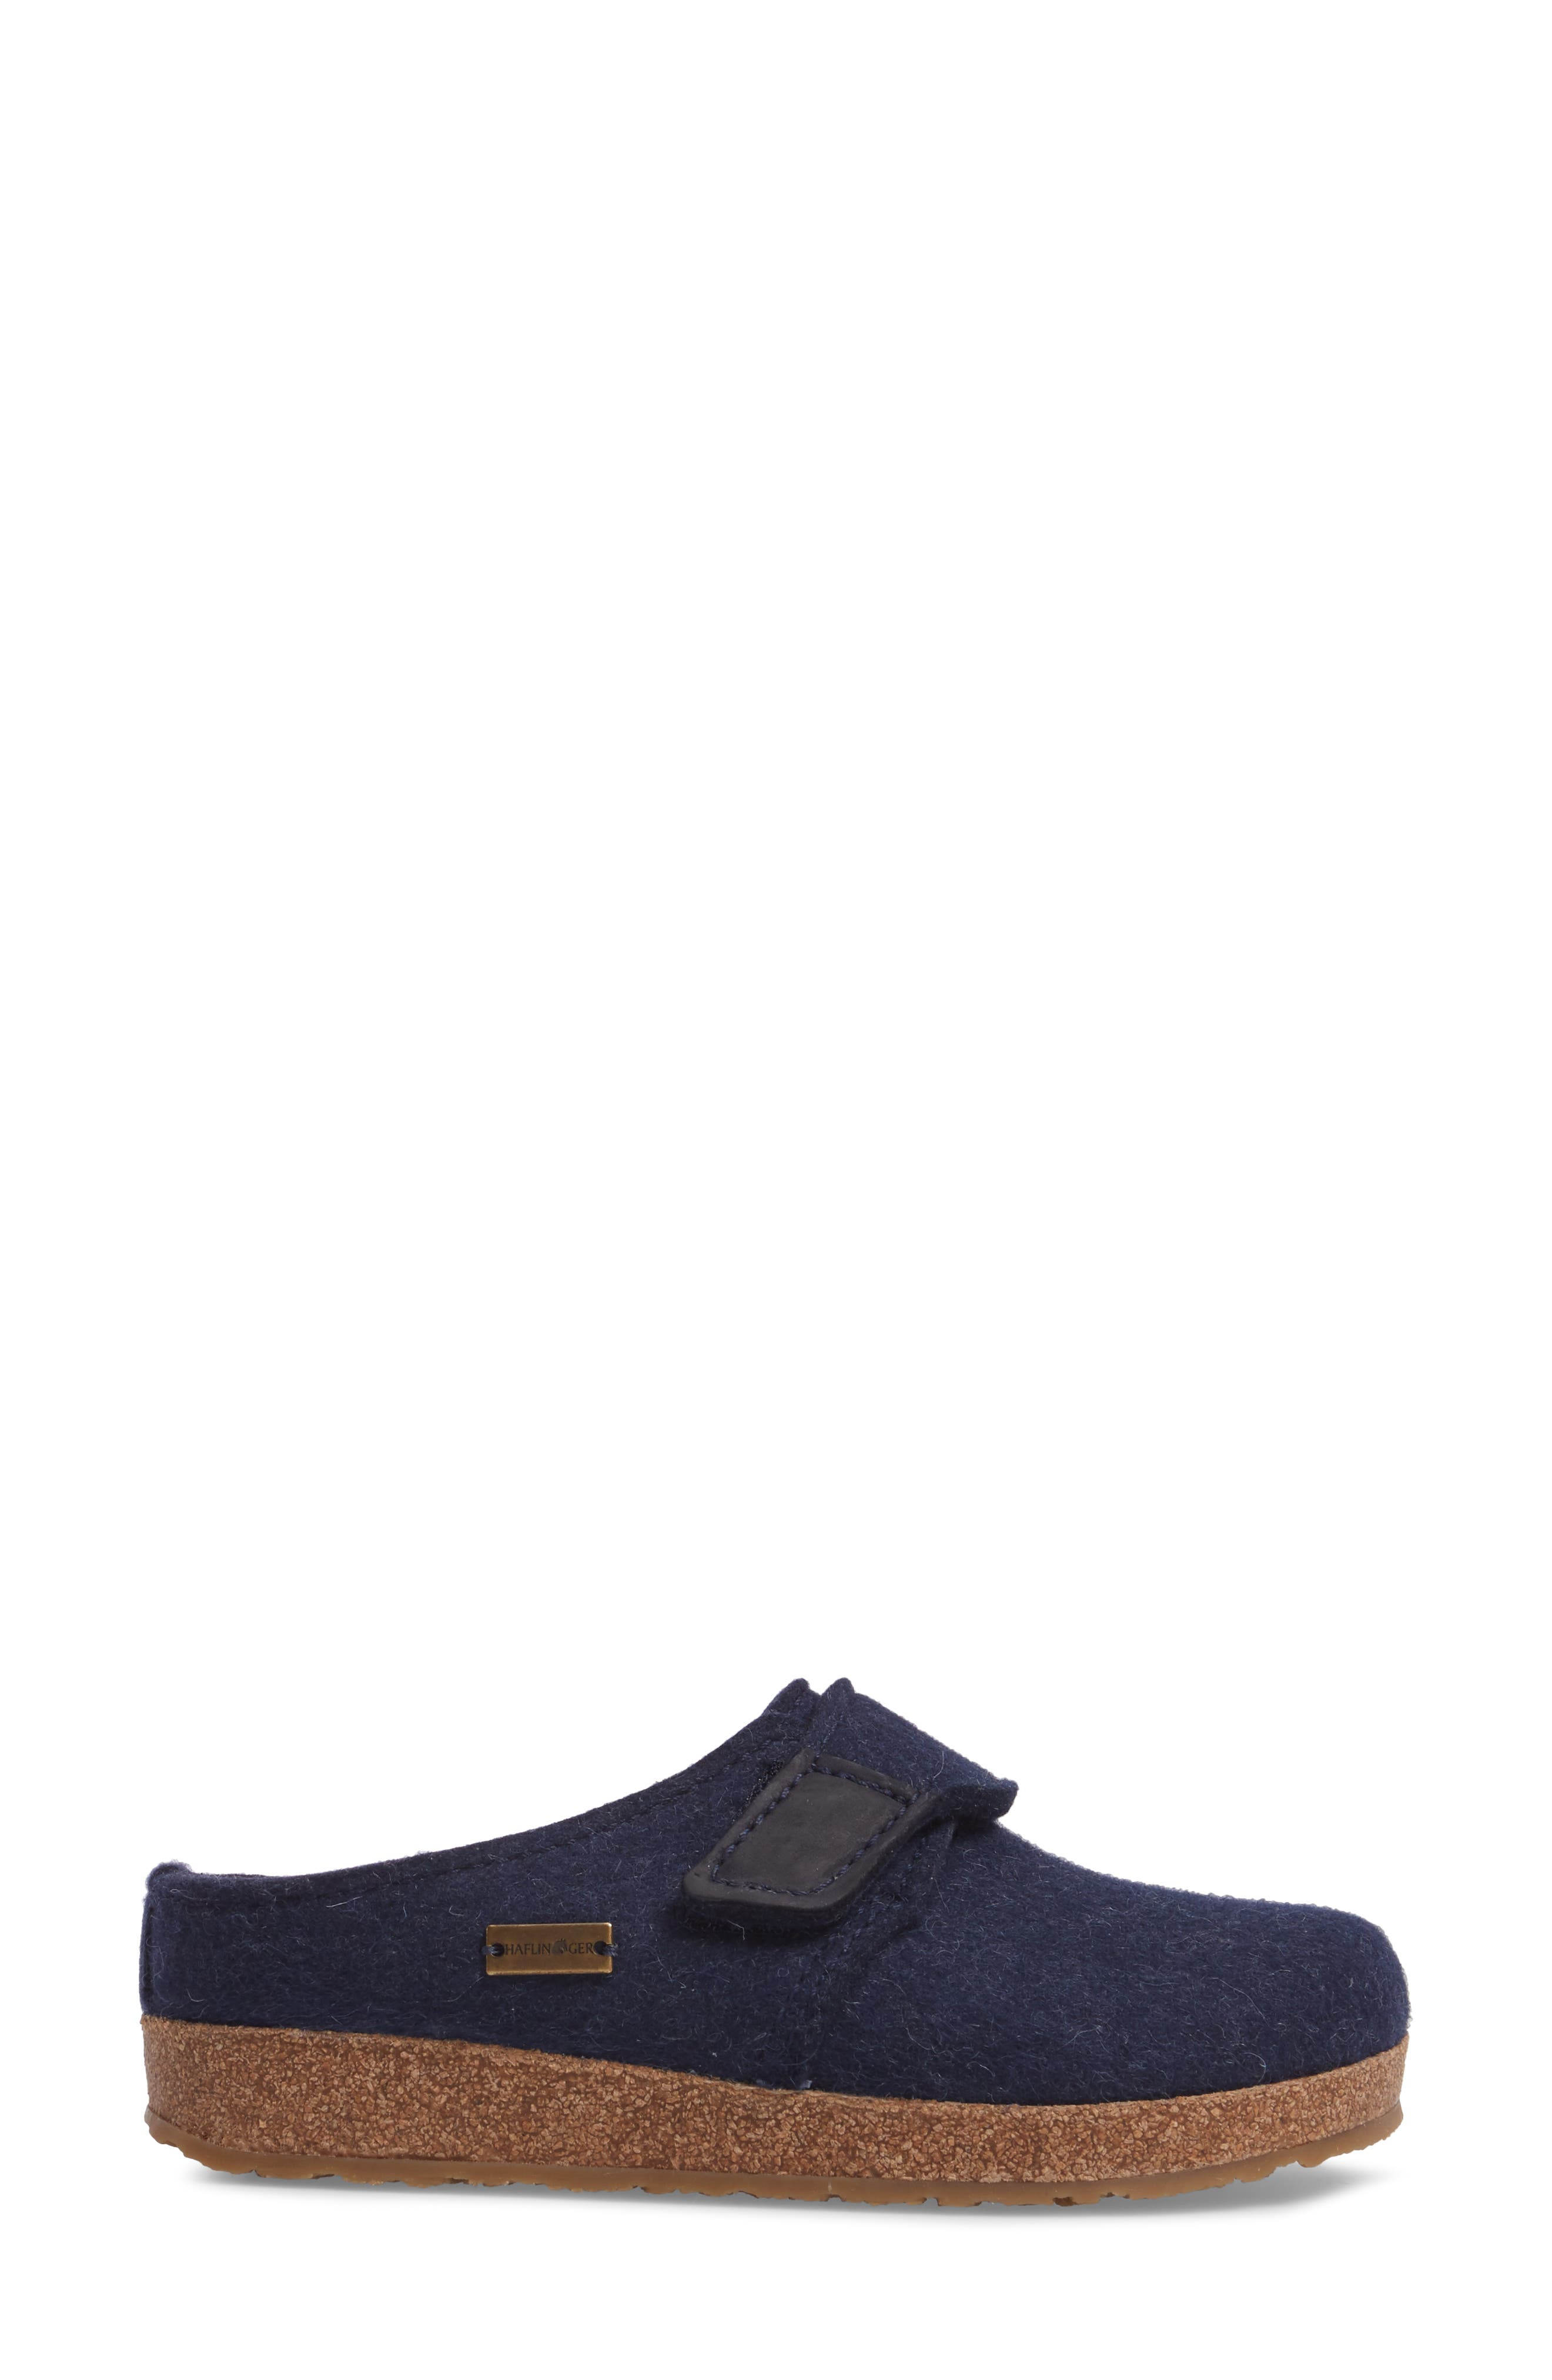 Grizzly Journey Clog Slipper,                             Alternate thumbnail 6, color,